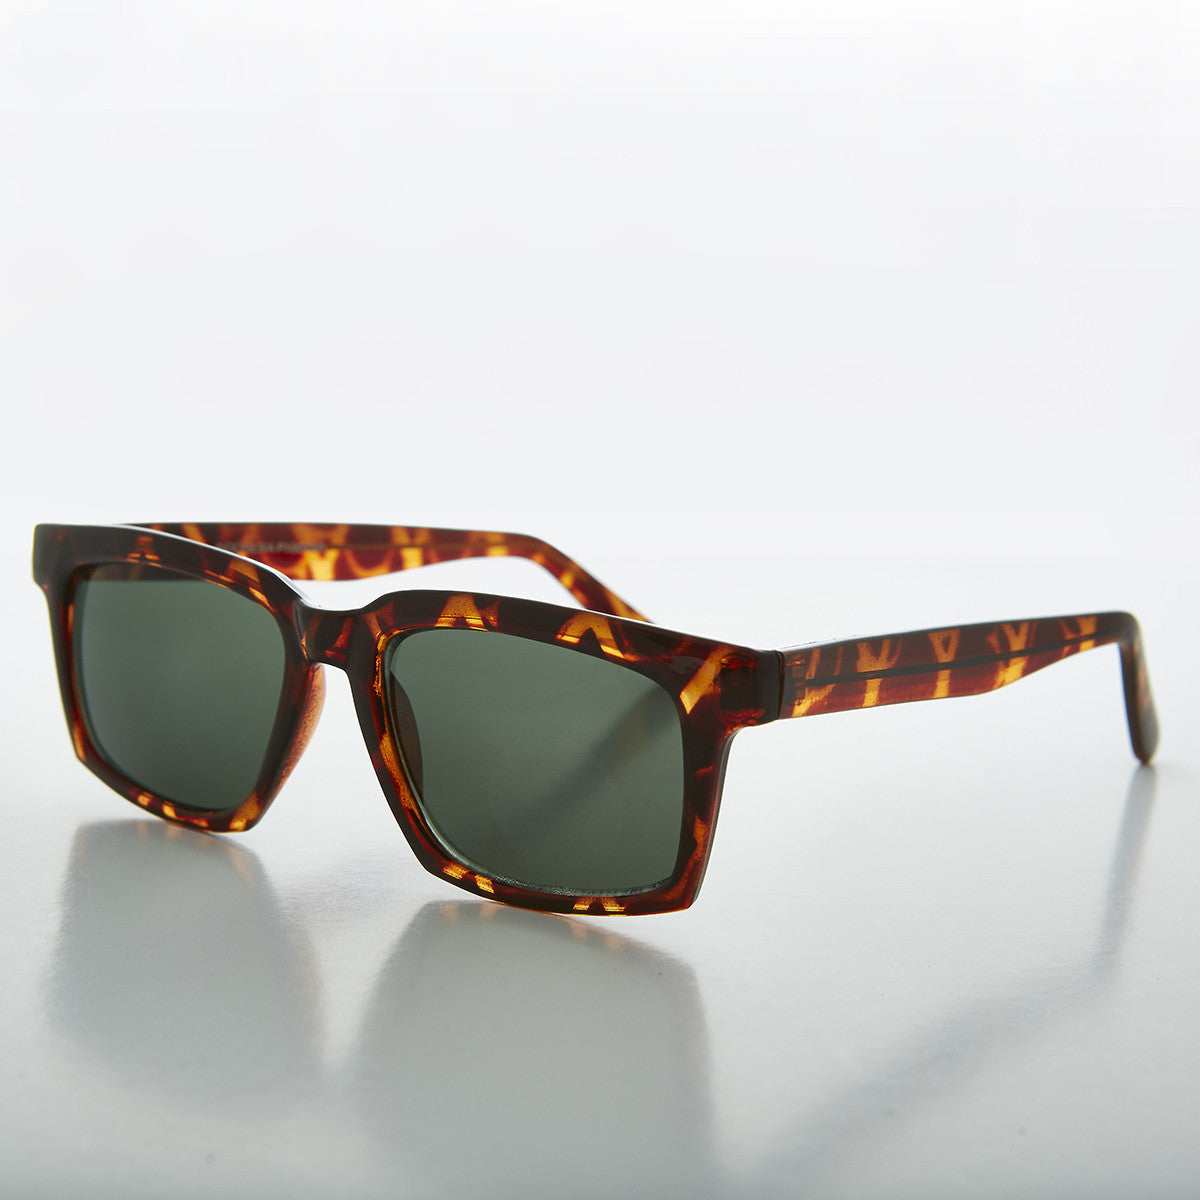 thick horn rim men's vintage sunglass